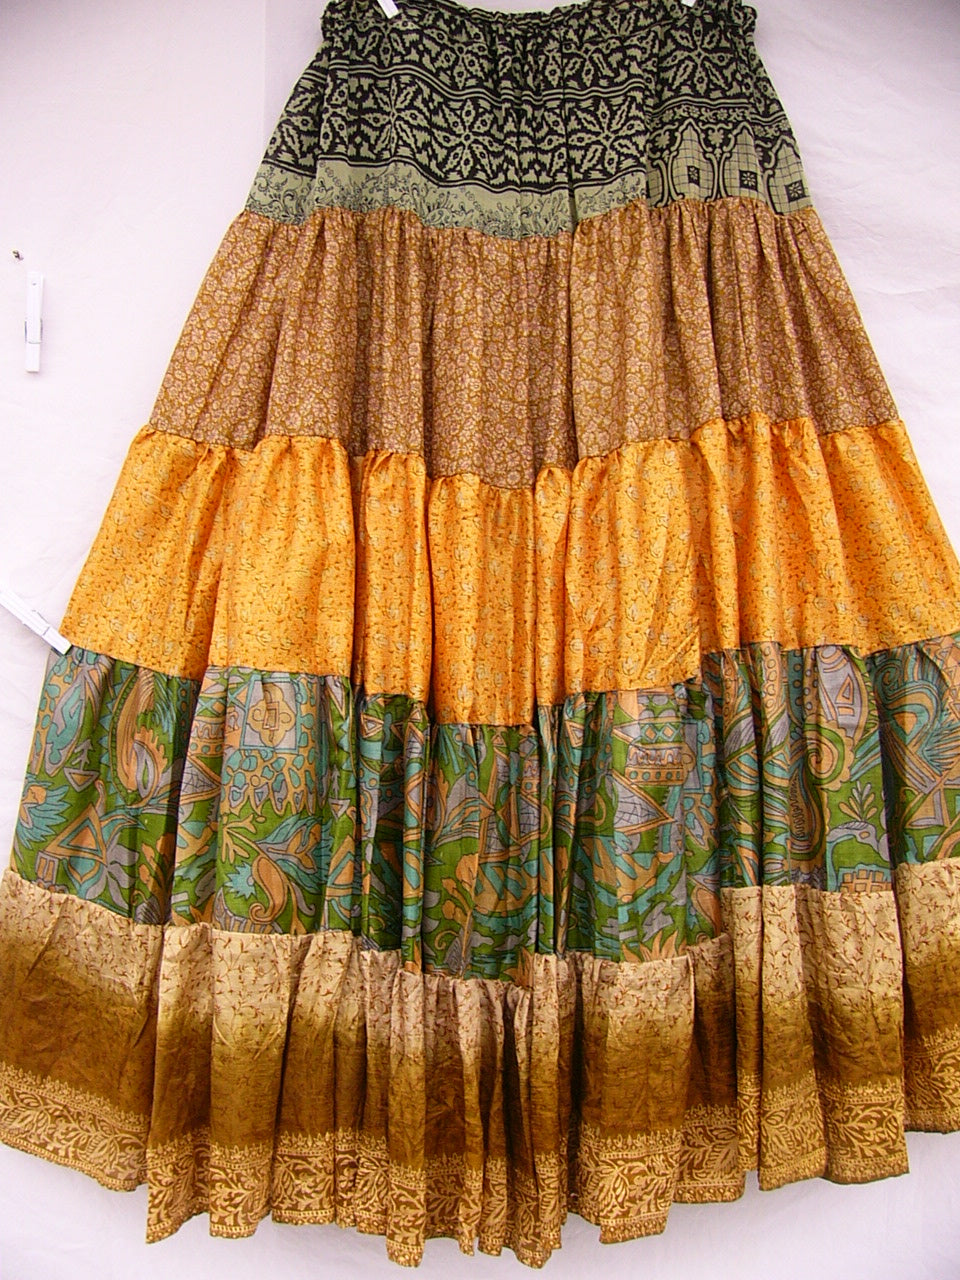 Vintage Sari Skirt Belly Dance Costume